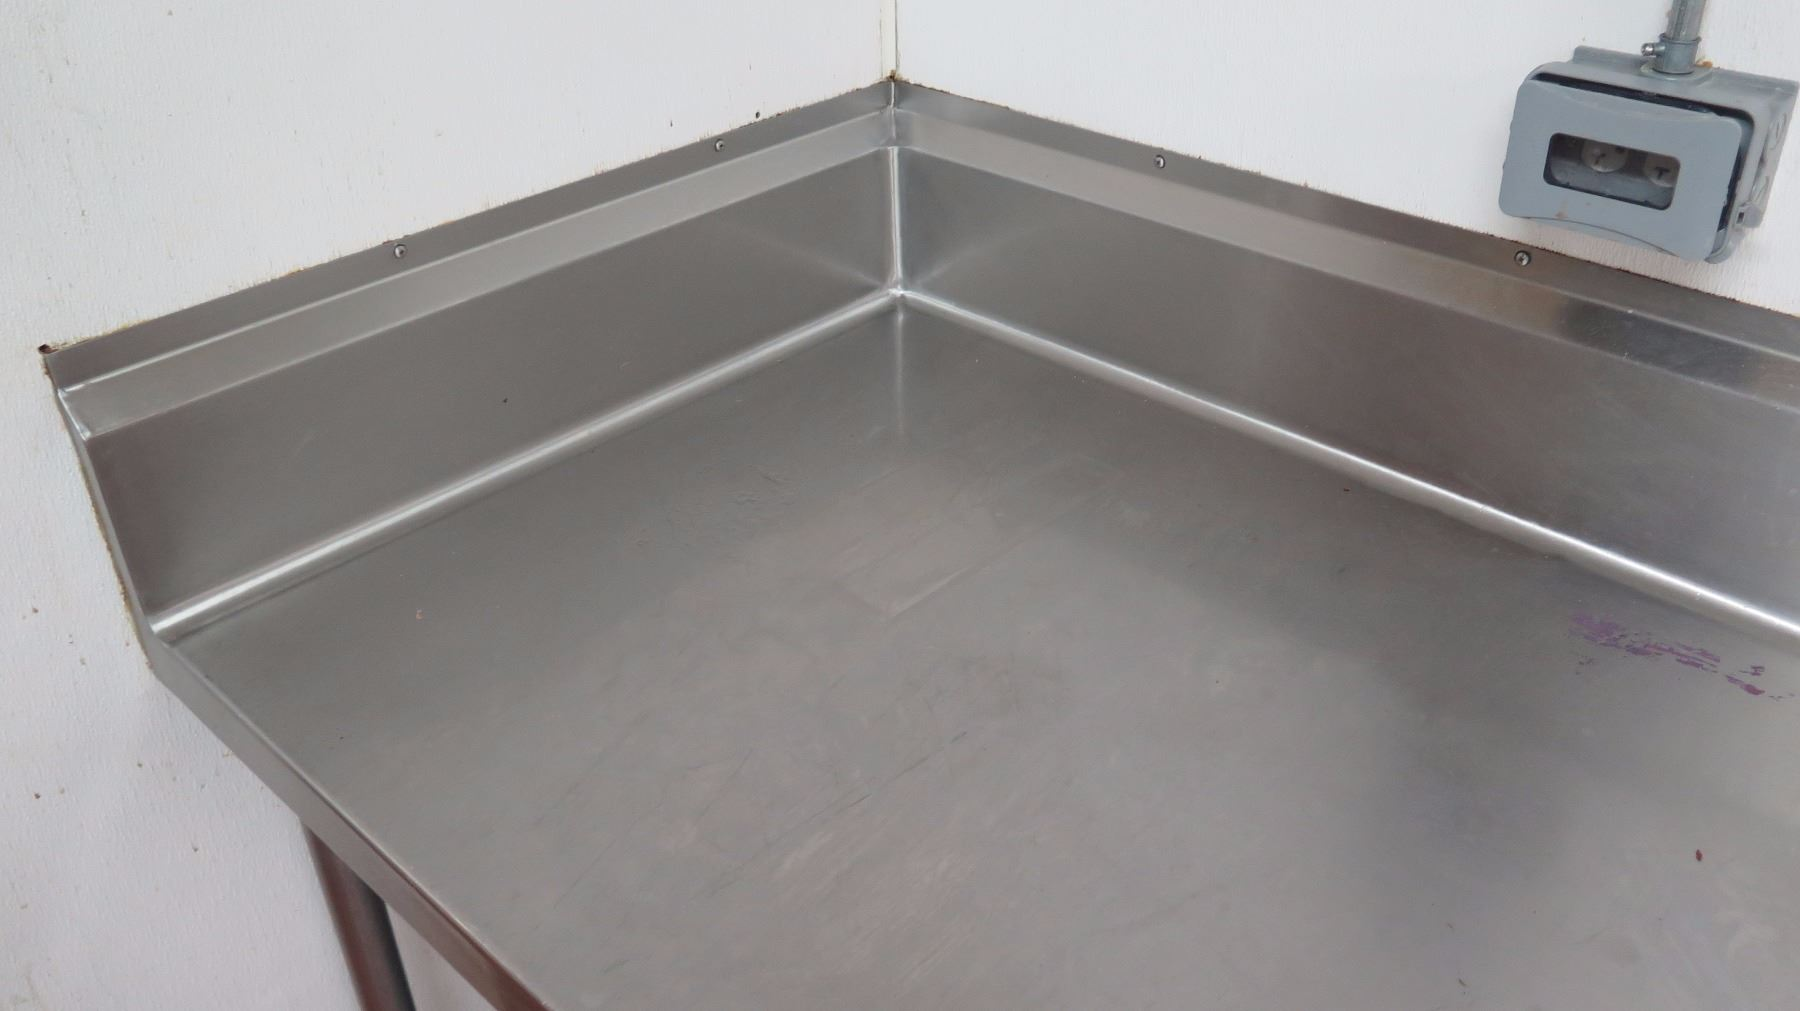 ... Image 3 : Stainless Steel Corner Prep Table W/Bowl, Dipping Well,  Undershelf ...